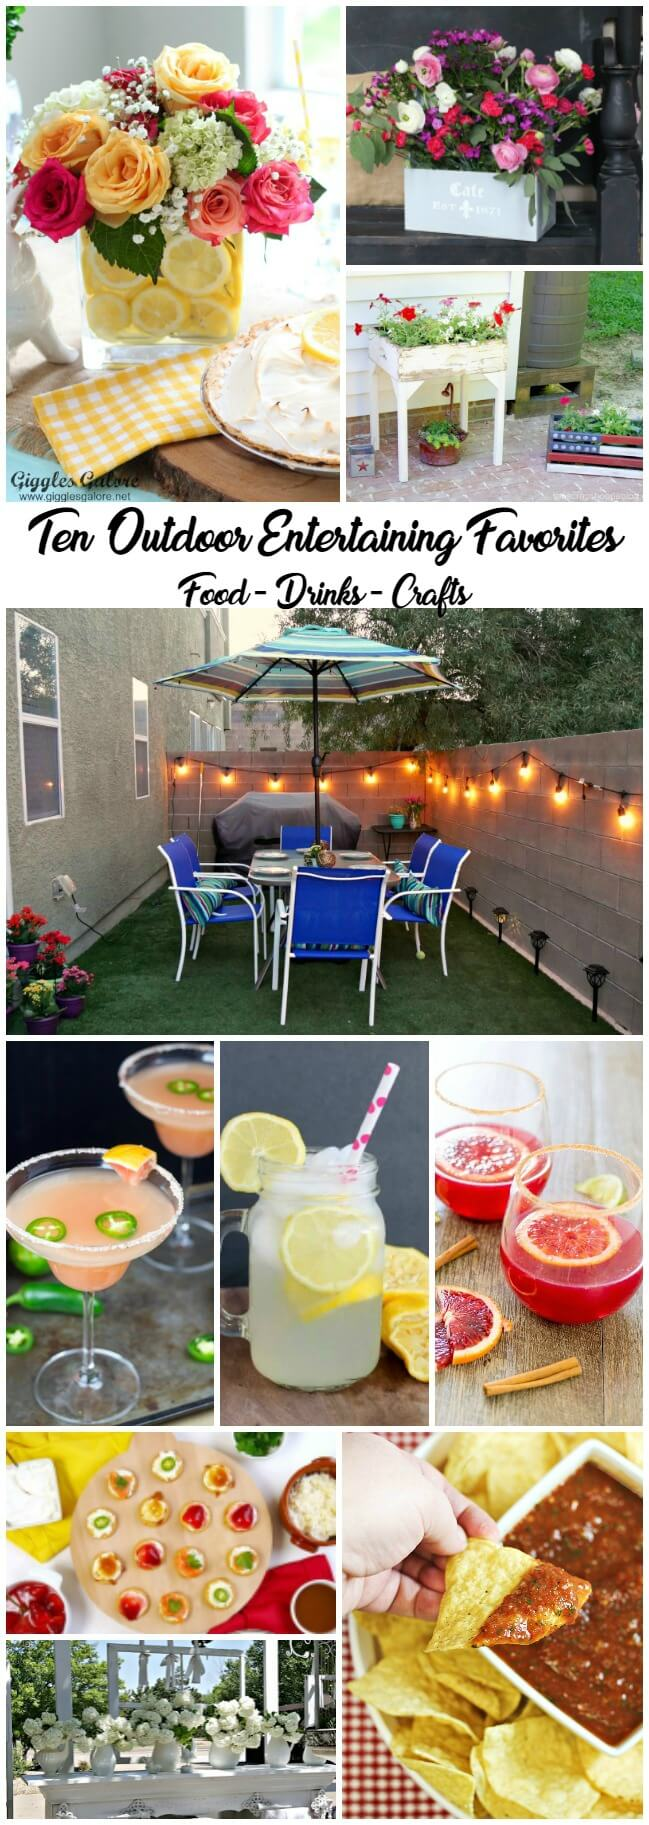 10 Outdoor Entertaining Favorites including food, drinks and crafts to get you backyard party ready!